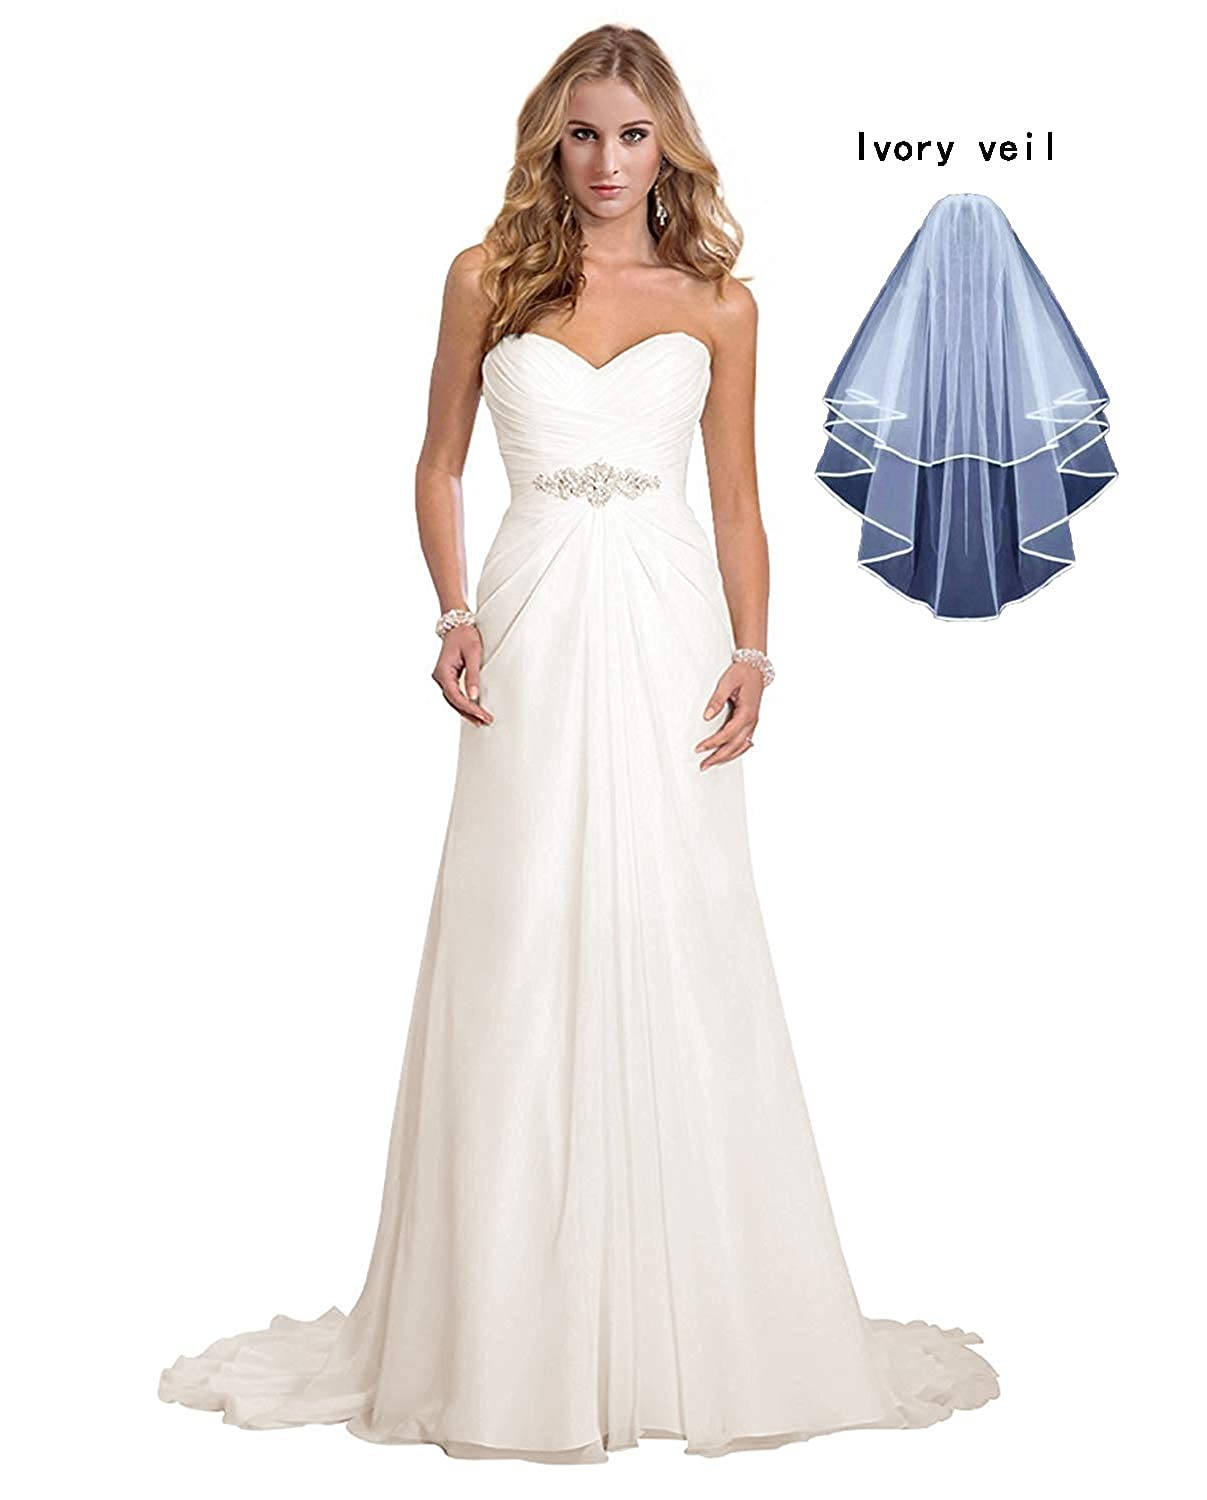 f600a3d629b Dreambridal Women s Chiffon A-Line Wedding Dresses Simple Sweetheart Beach Bridal  Gowns with Veil at Amazon Women s Clothing store